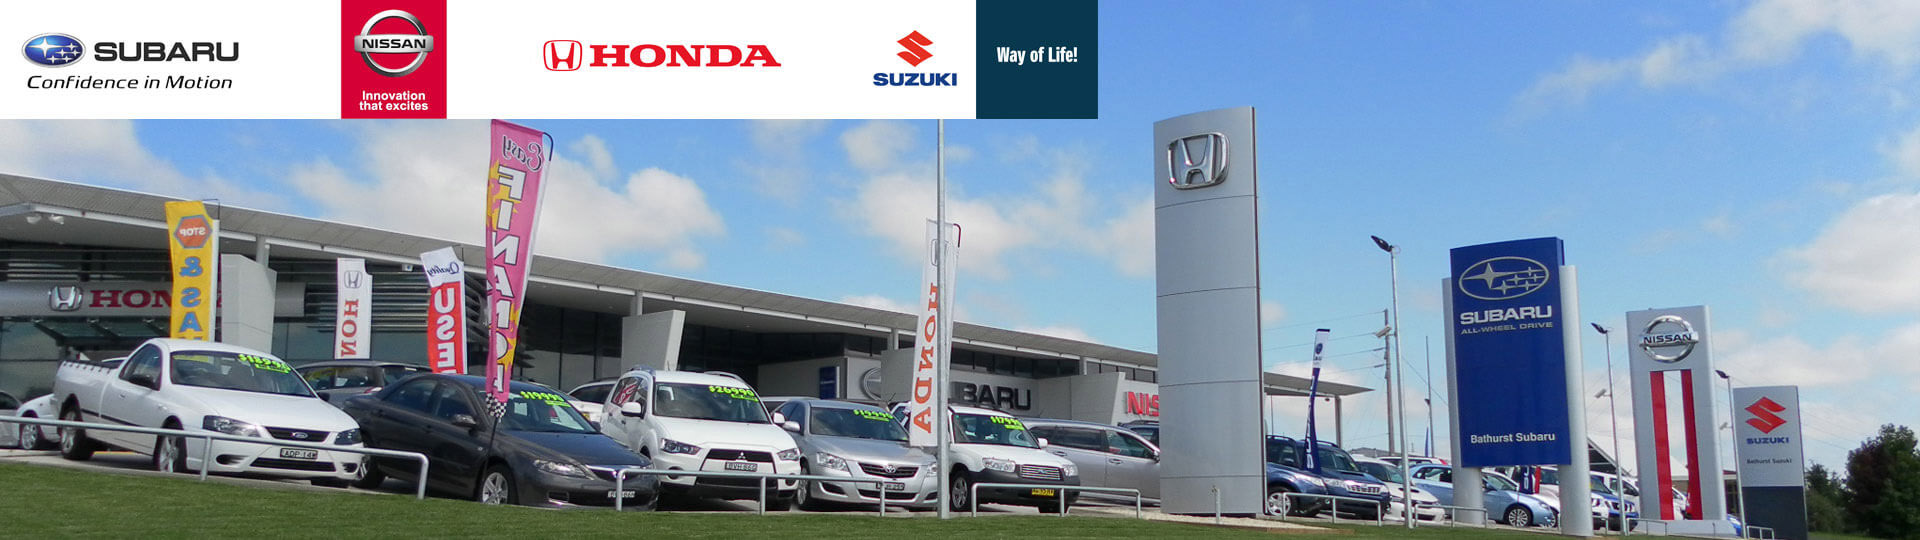 With four of the top Marque brands Subaru, Nissan, Honda and Suzuki at our state of the art Dealership located at 98 Corporation Avenue (opposite the RMS), our aim is for every customer to Drive Away Happy.